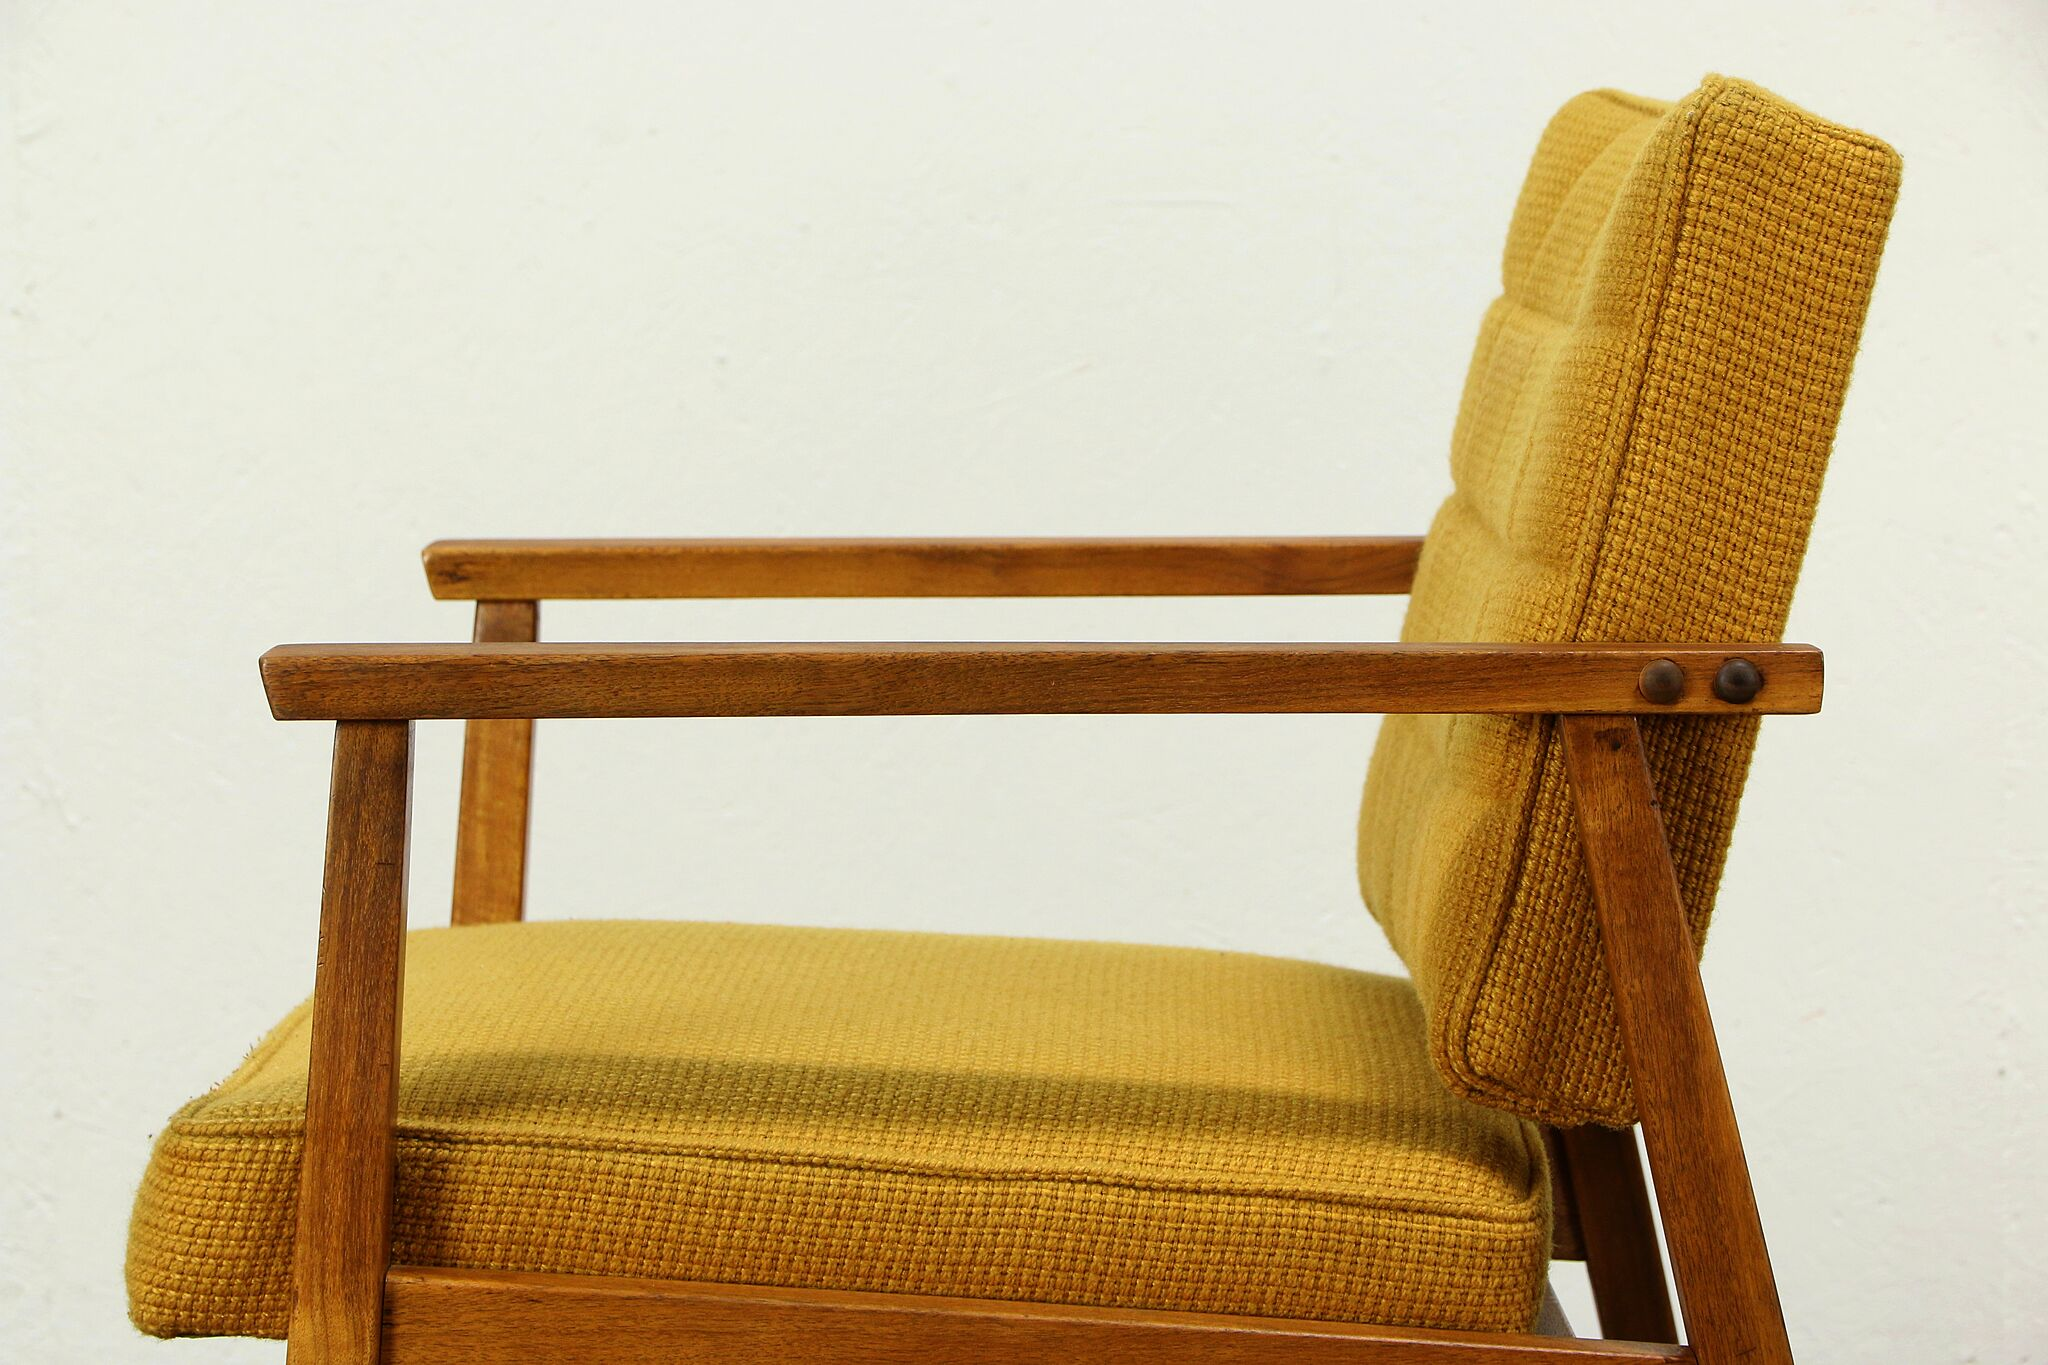 Sold Pair Of Midcentury Modern 1960 Vintage Chairs Nightingale Toronto 35354 Harp Gallery Antiques Furniture